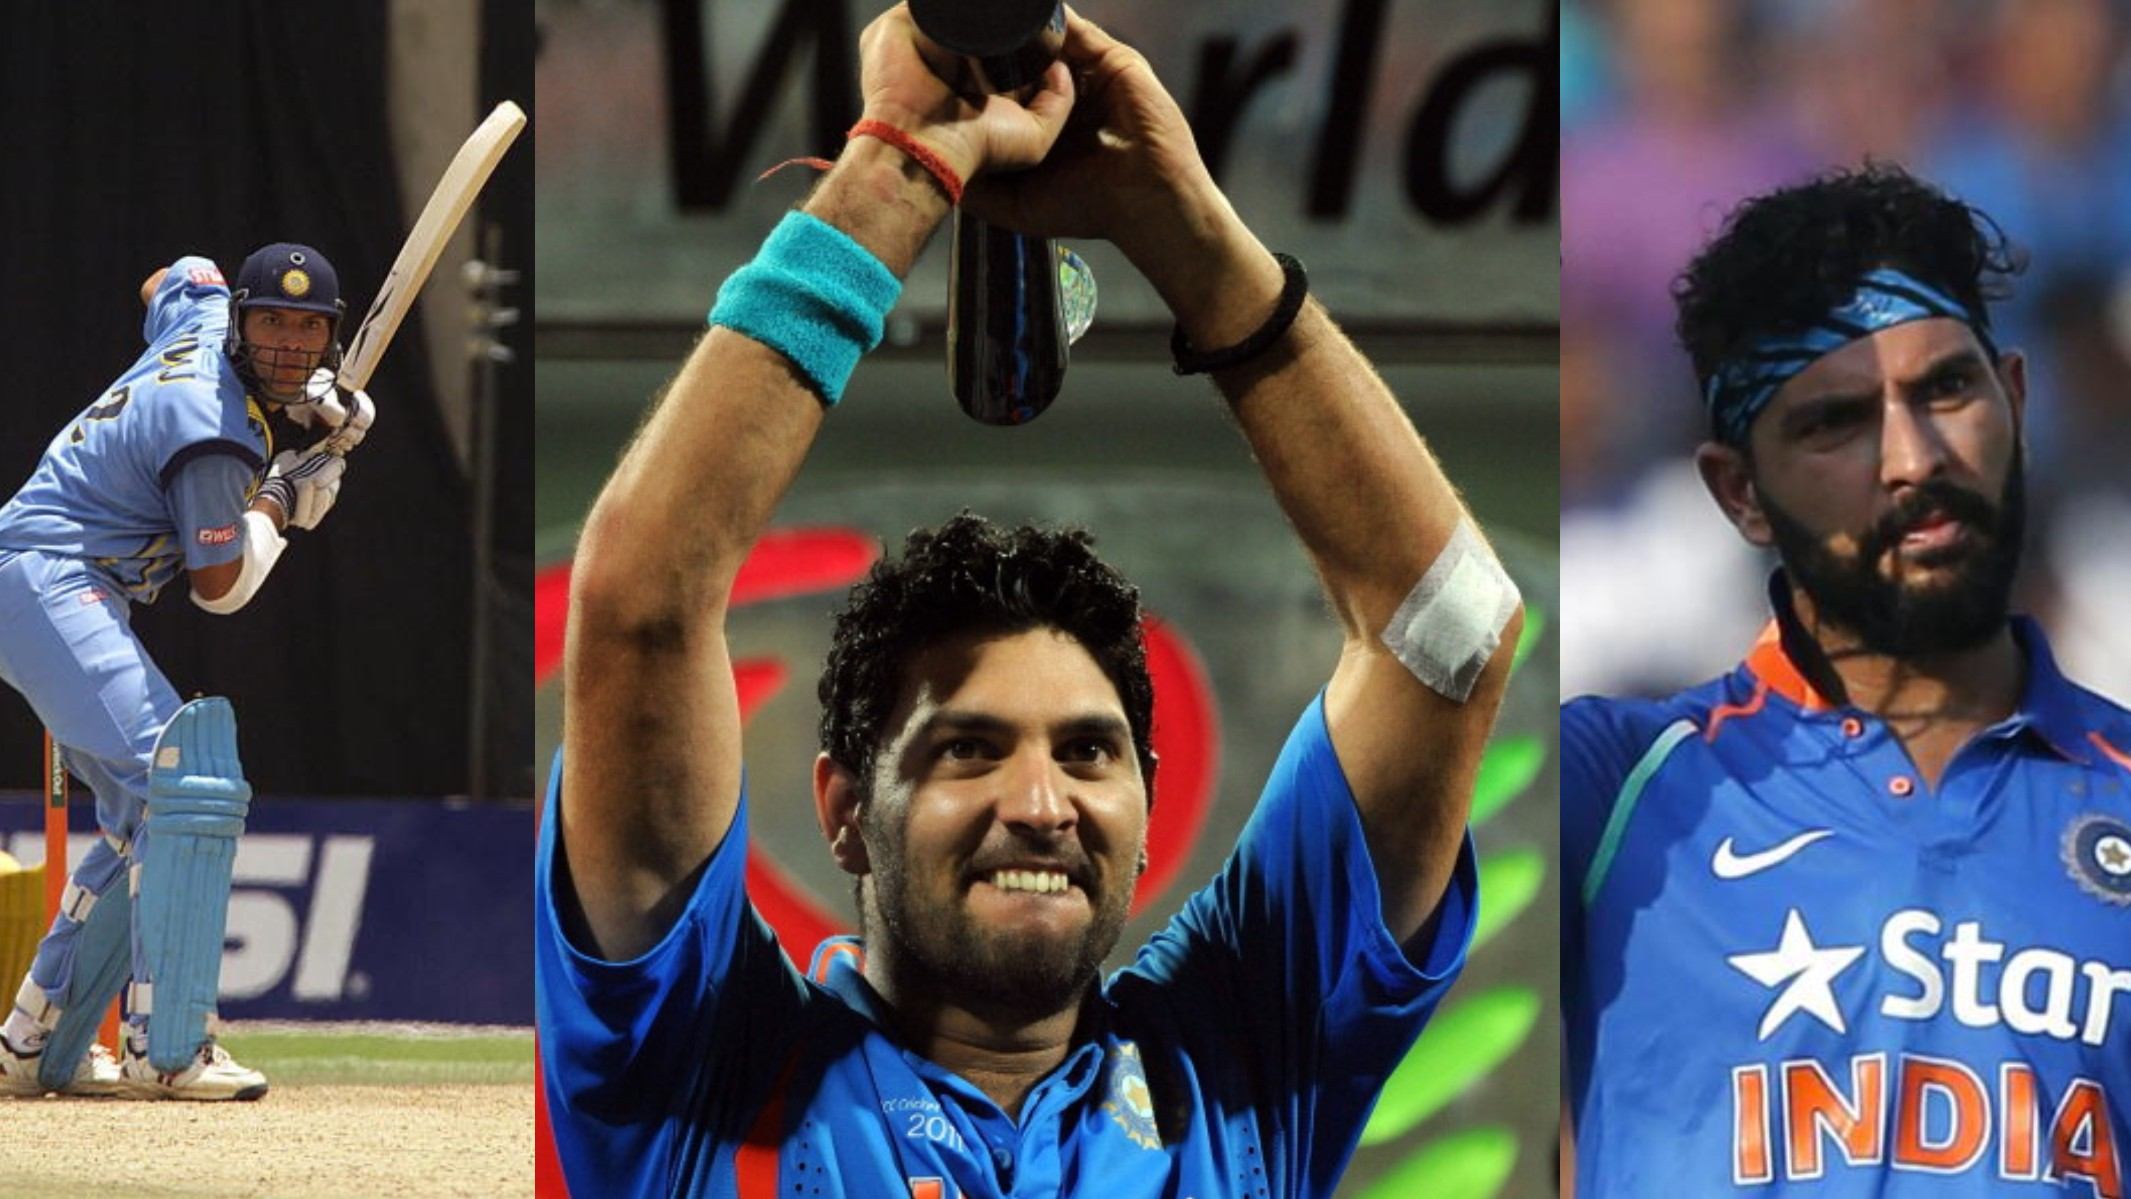 Top 5 moments from the career of the amazing Yuvraj Singh